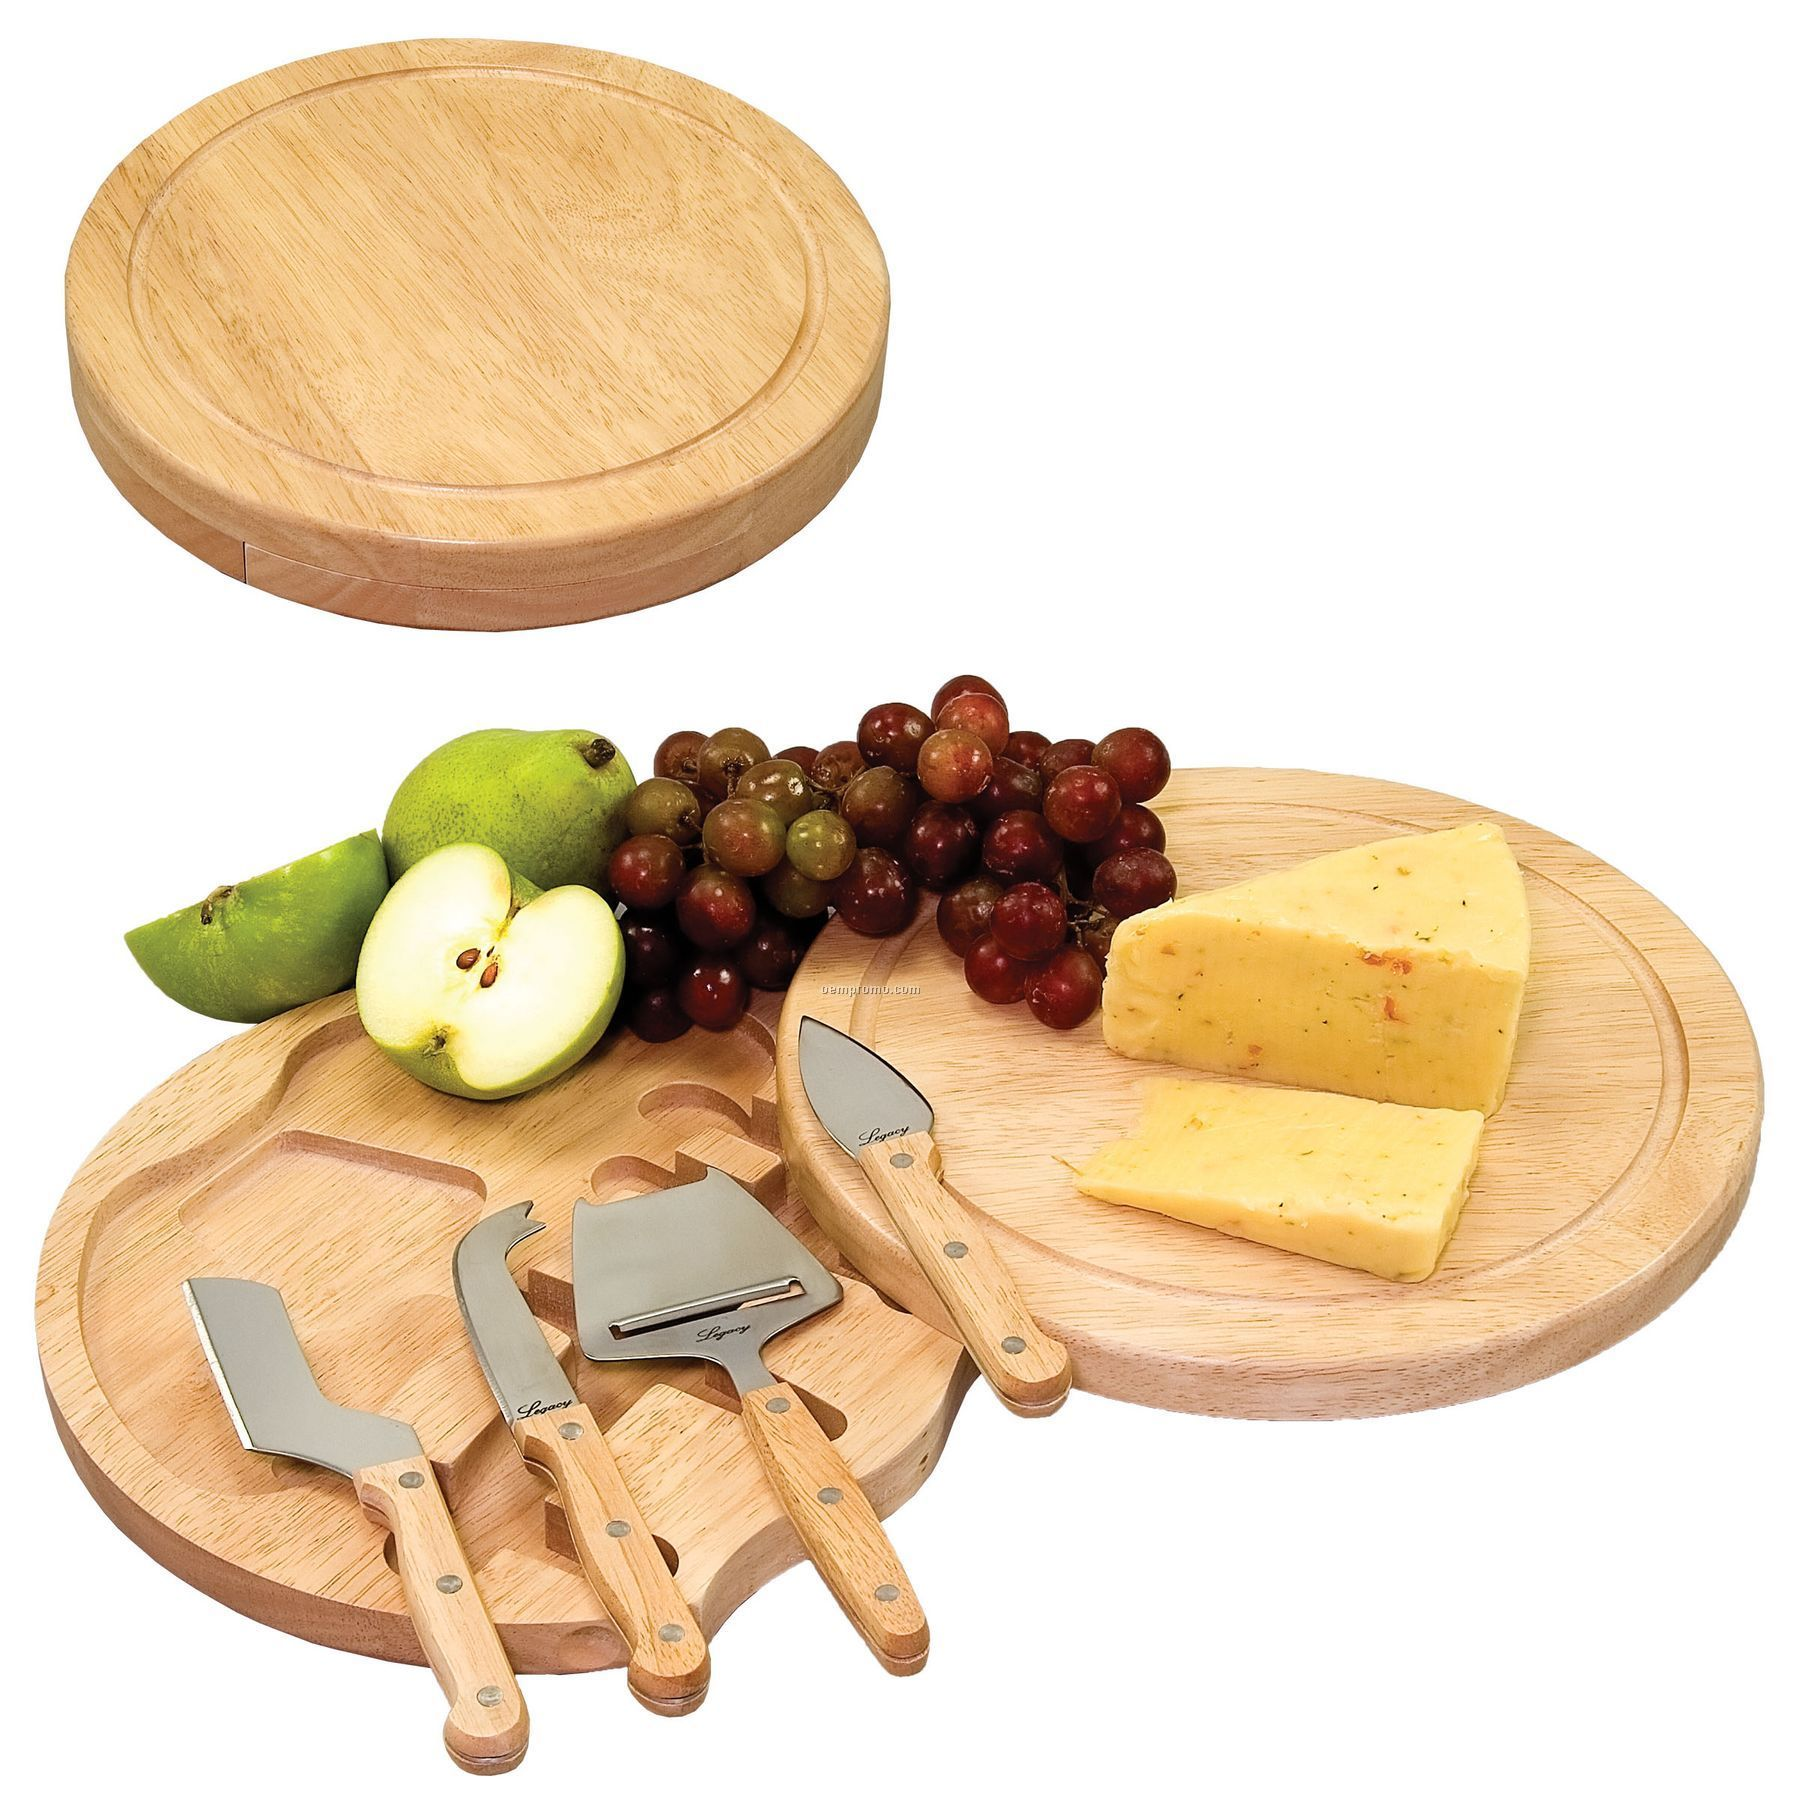 "Circo 10.2"" Circular Cutting Board W/ 4 Stainless Steel Cheese Tools"